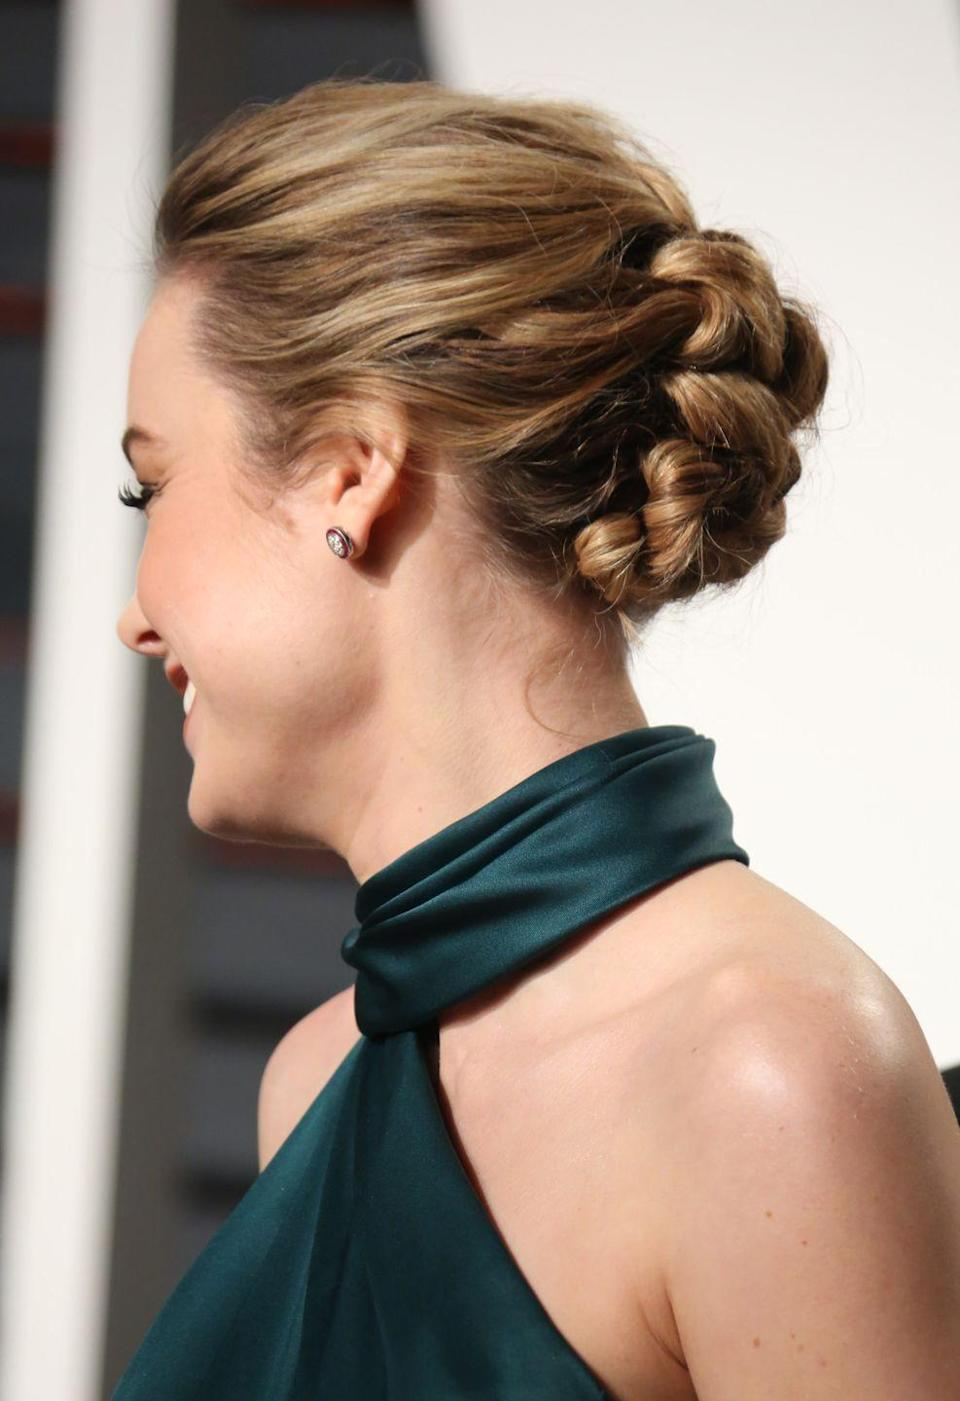 <p>Who needs a boring old bun when you can have a braid a la Brie Larson?</p>